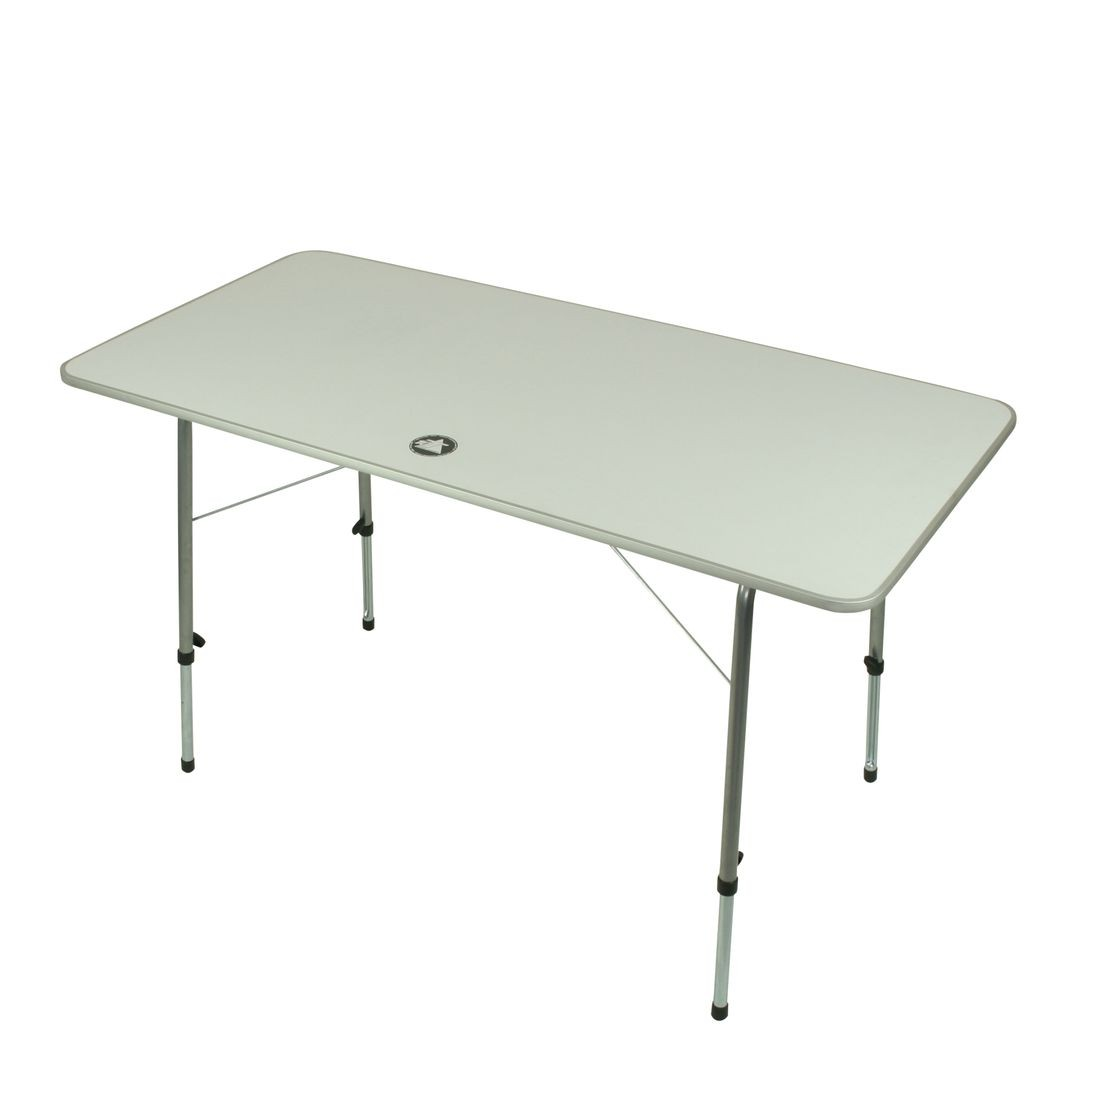 10t flaprack double table pliante de camping stable - Pied de table reglable ikea ...